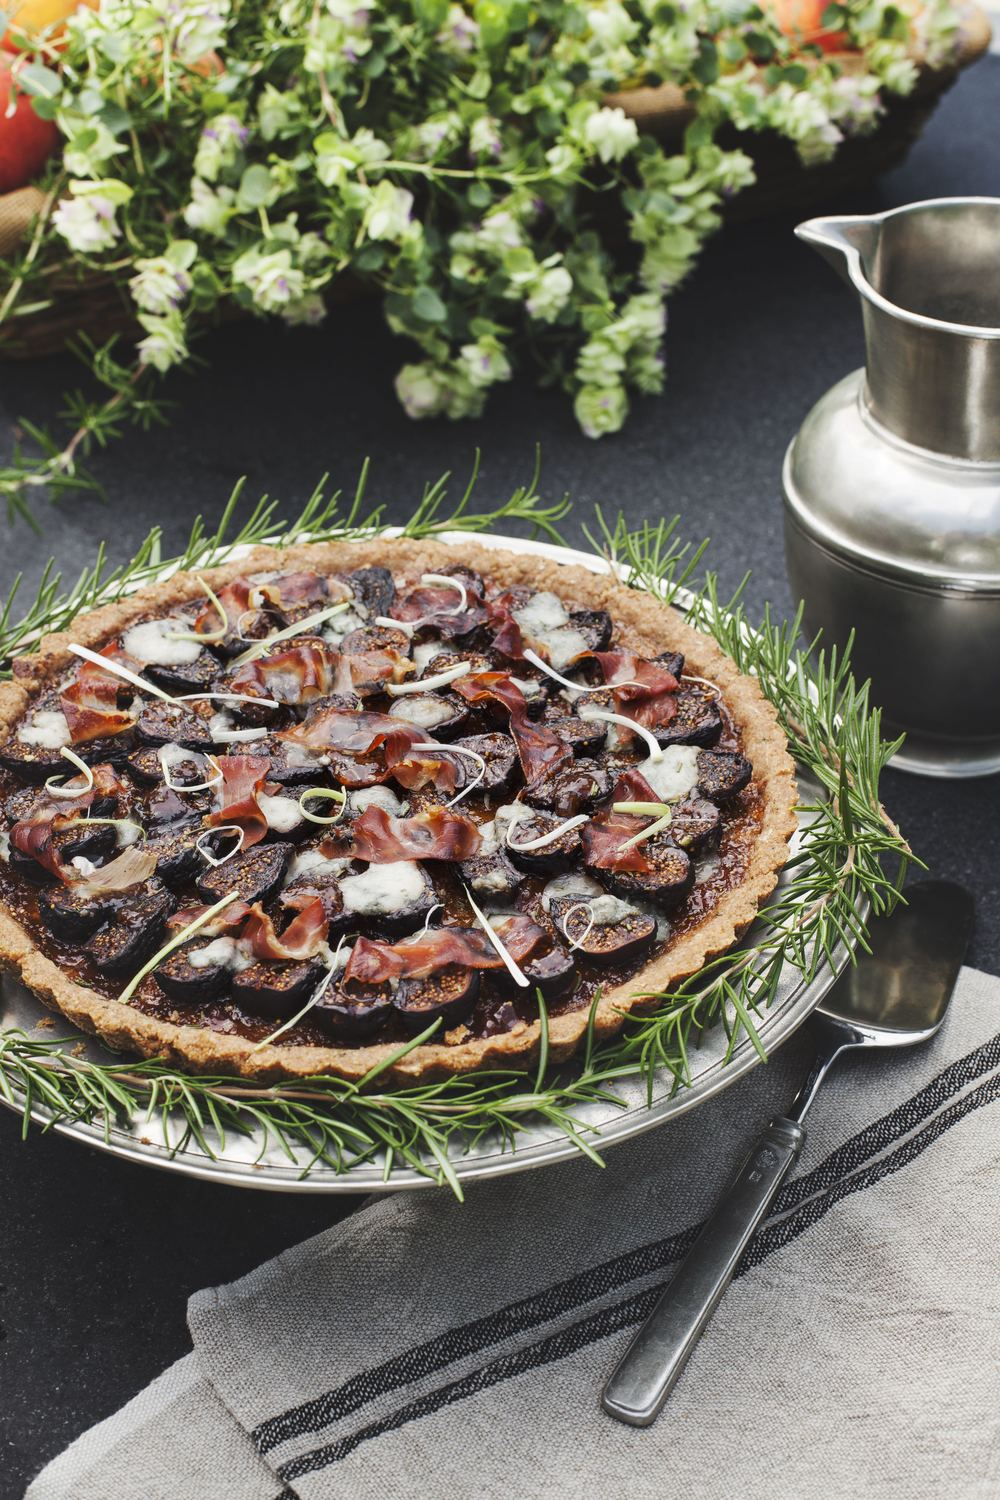 FIG, GORGONZOLA & PROSCIUTTO TART - One of earth's healthiest and most luscious foods, a fig's chewy flesh, smooth skin and crunchy seeds make a dramatic presentation in any dish. Combined with the crumbly texture and green-blue marbling of Gorgonzola and the salty, meaty flavor of Italian prosciutto, this decadent savory tart deserves to be served with a lightly dressed salad and a glass or two of Proseco.